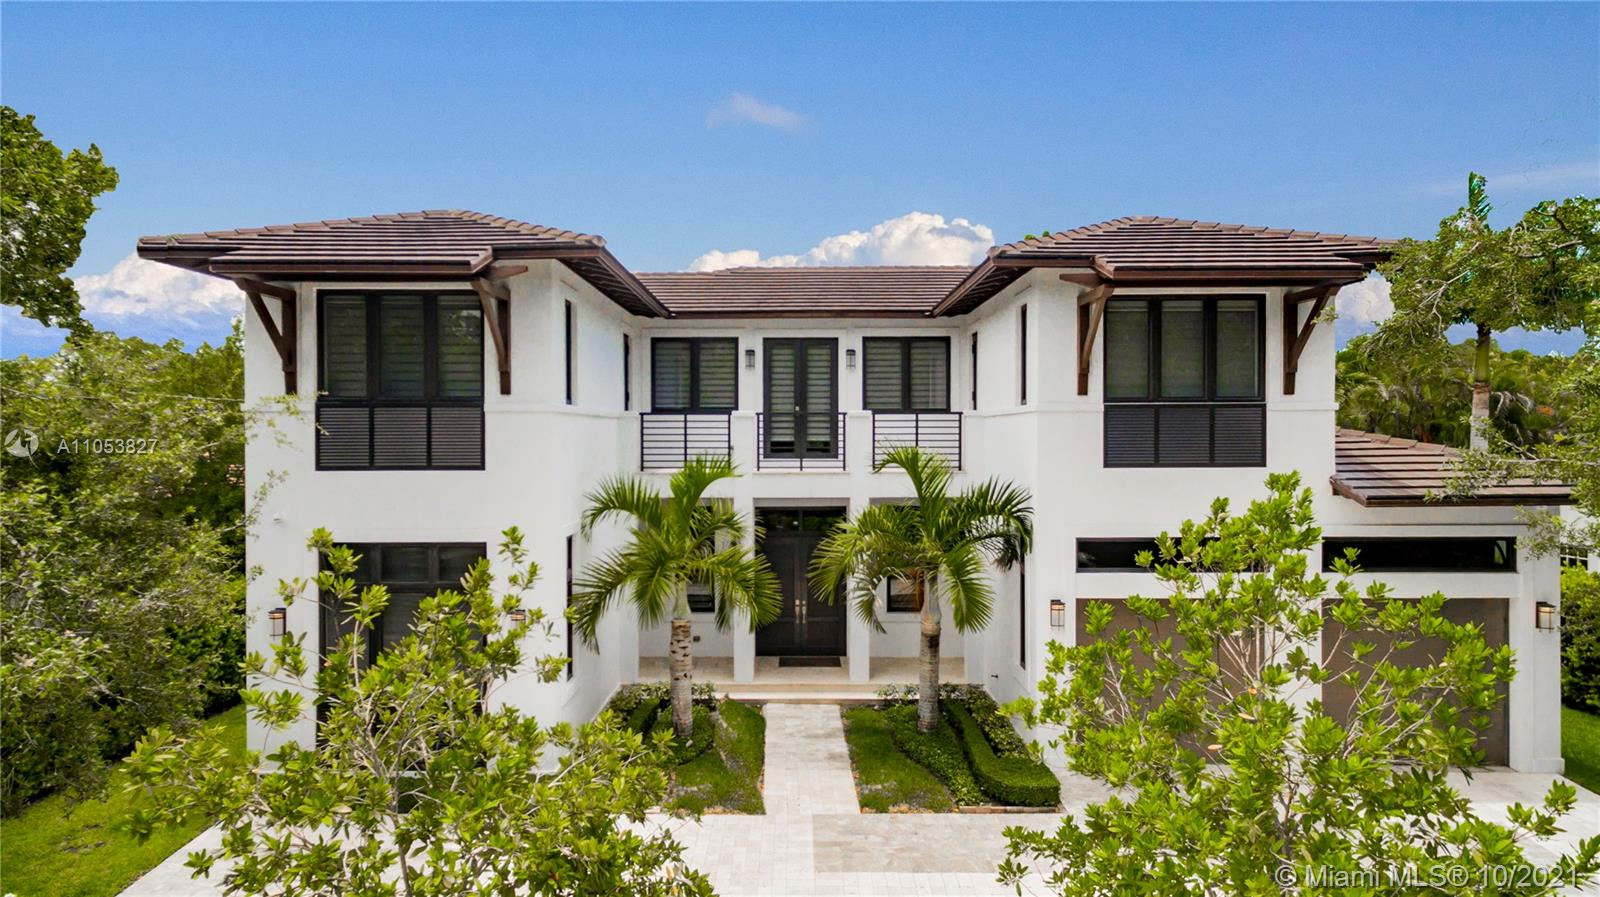 816  Paradiso Ave  For Sale A11053827, FL